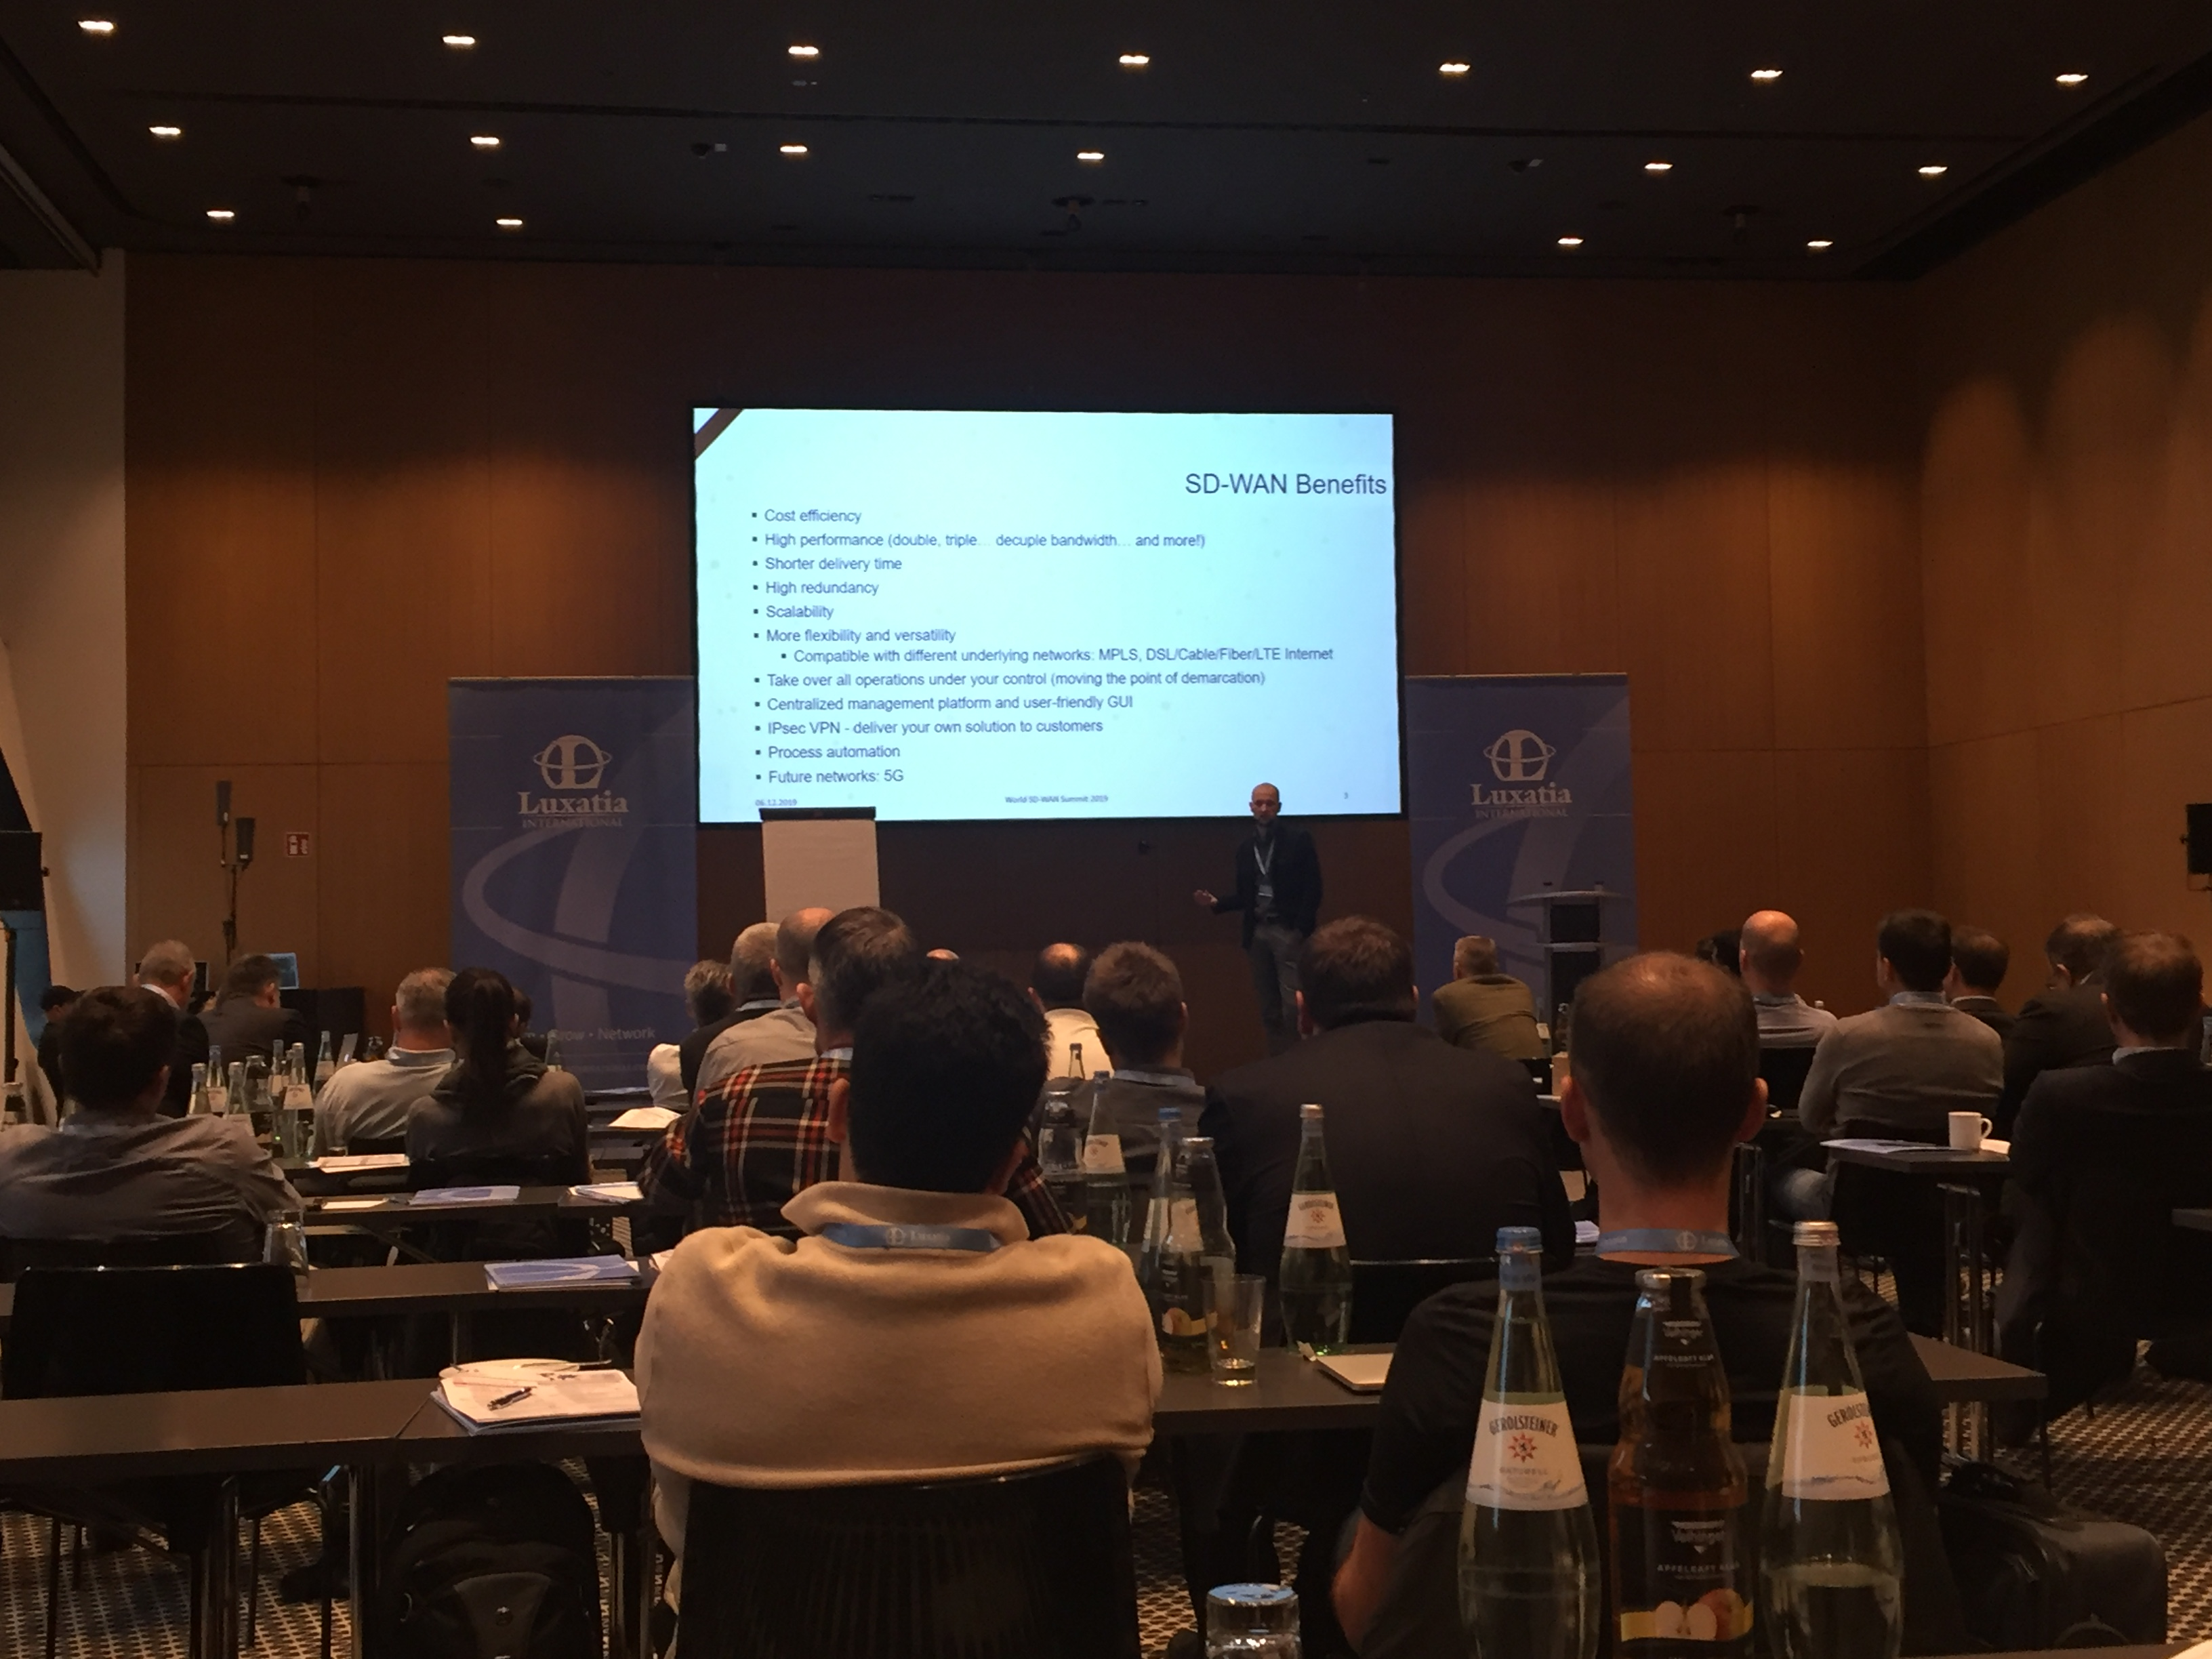 World SD-WAN Summit Kuehne Nagel